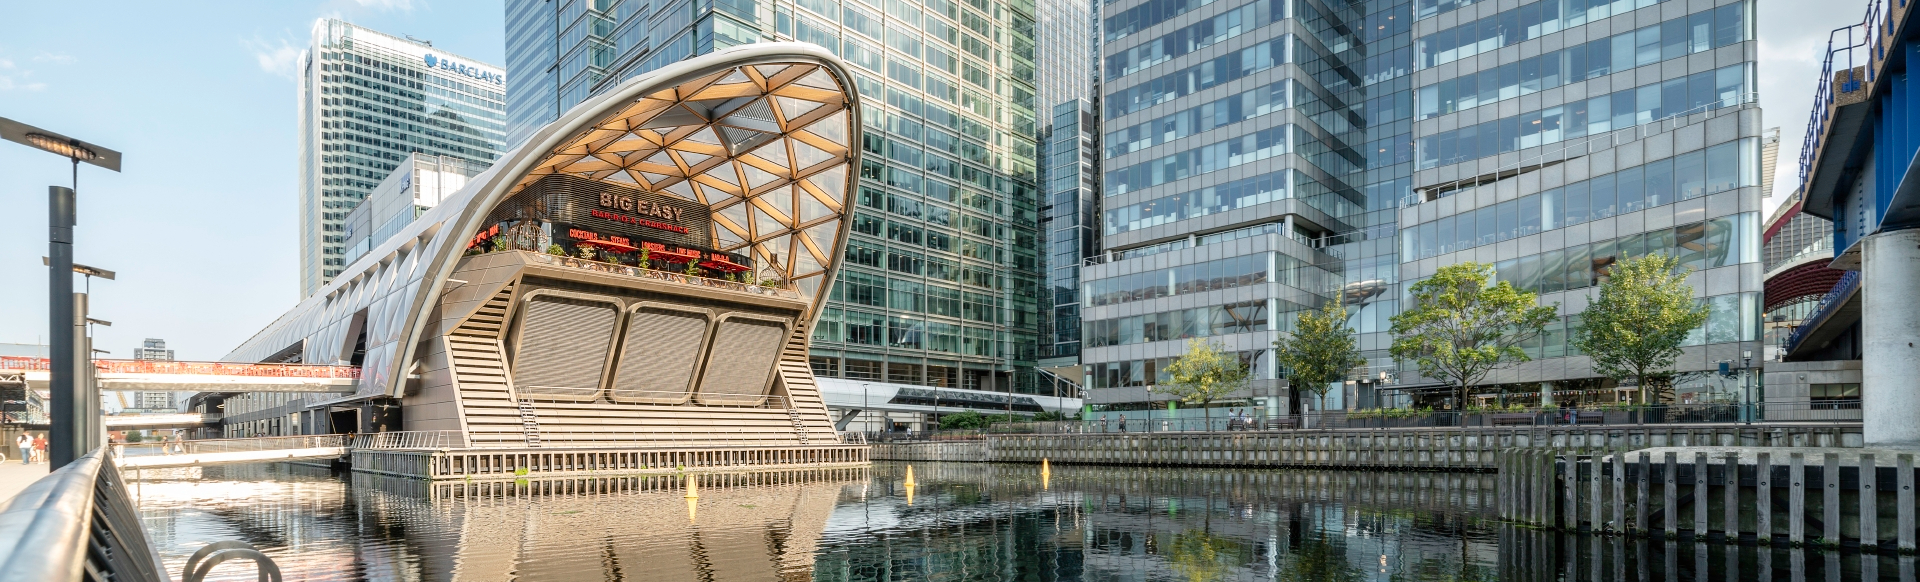 A trendy street food eatery among the modern buildings in Canary Wharf, London.